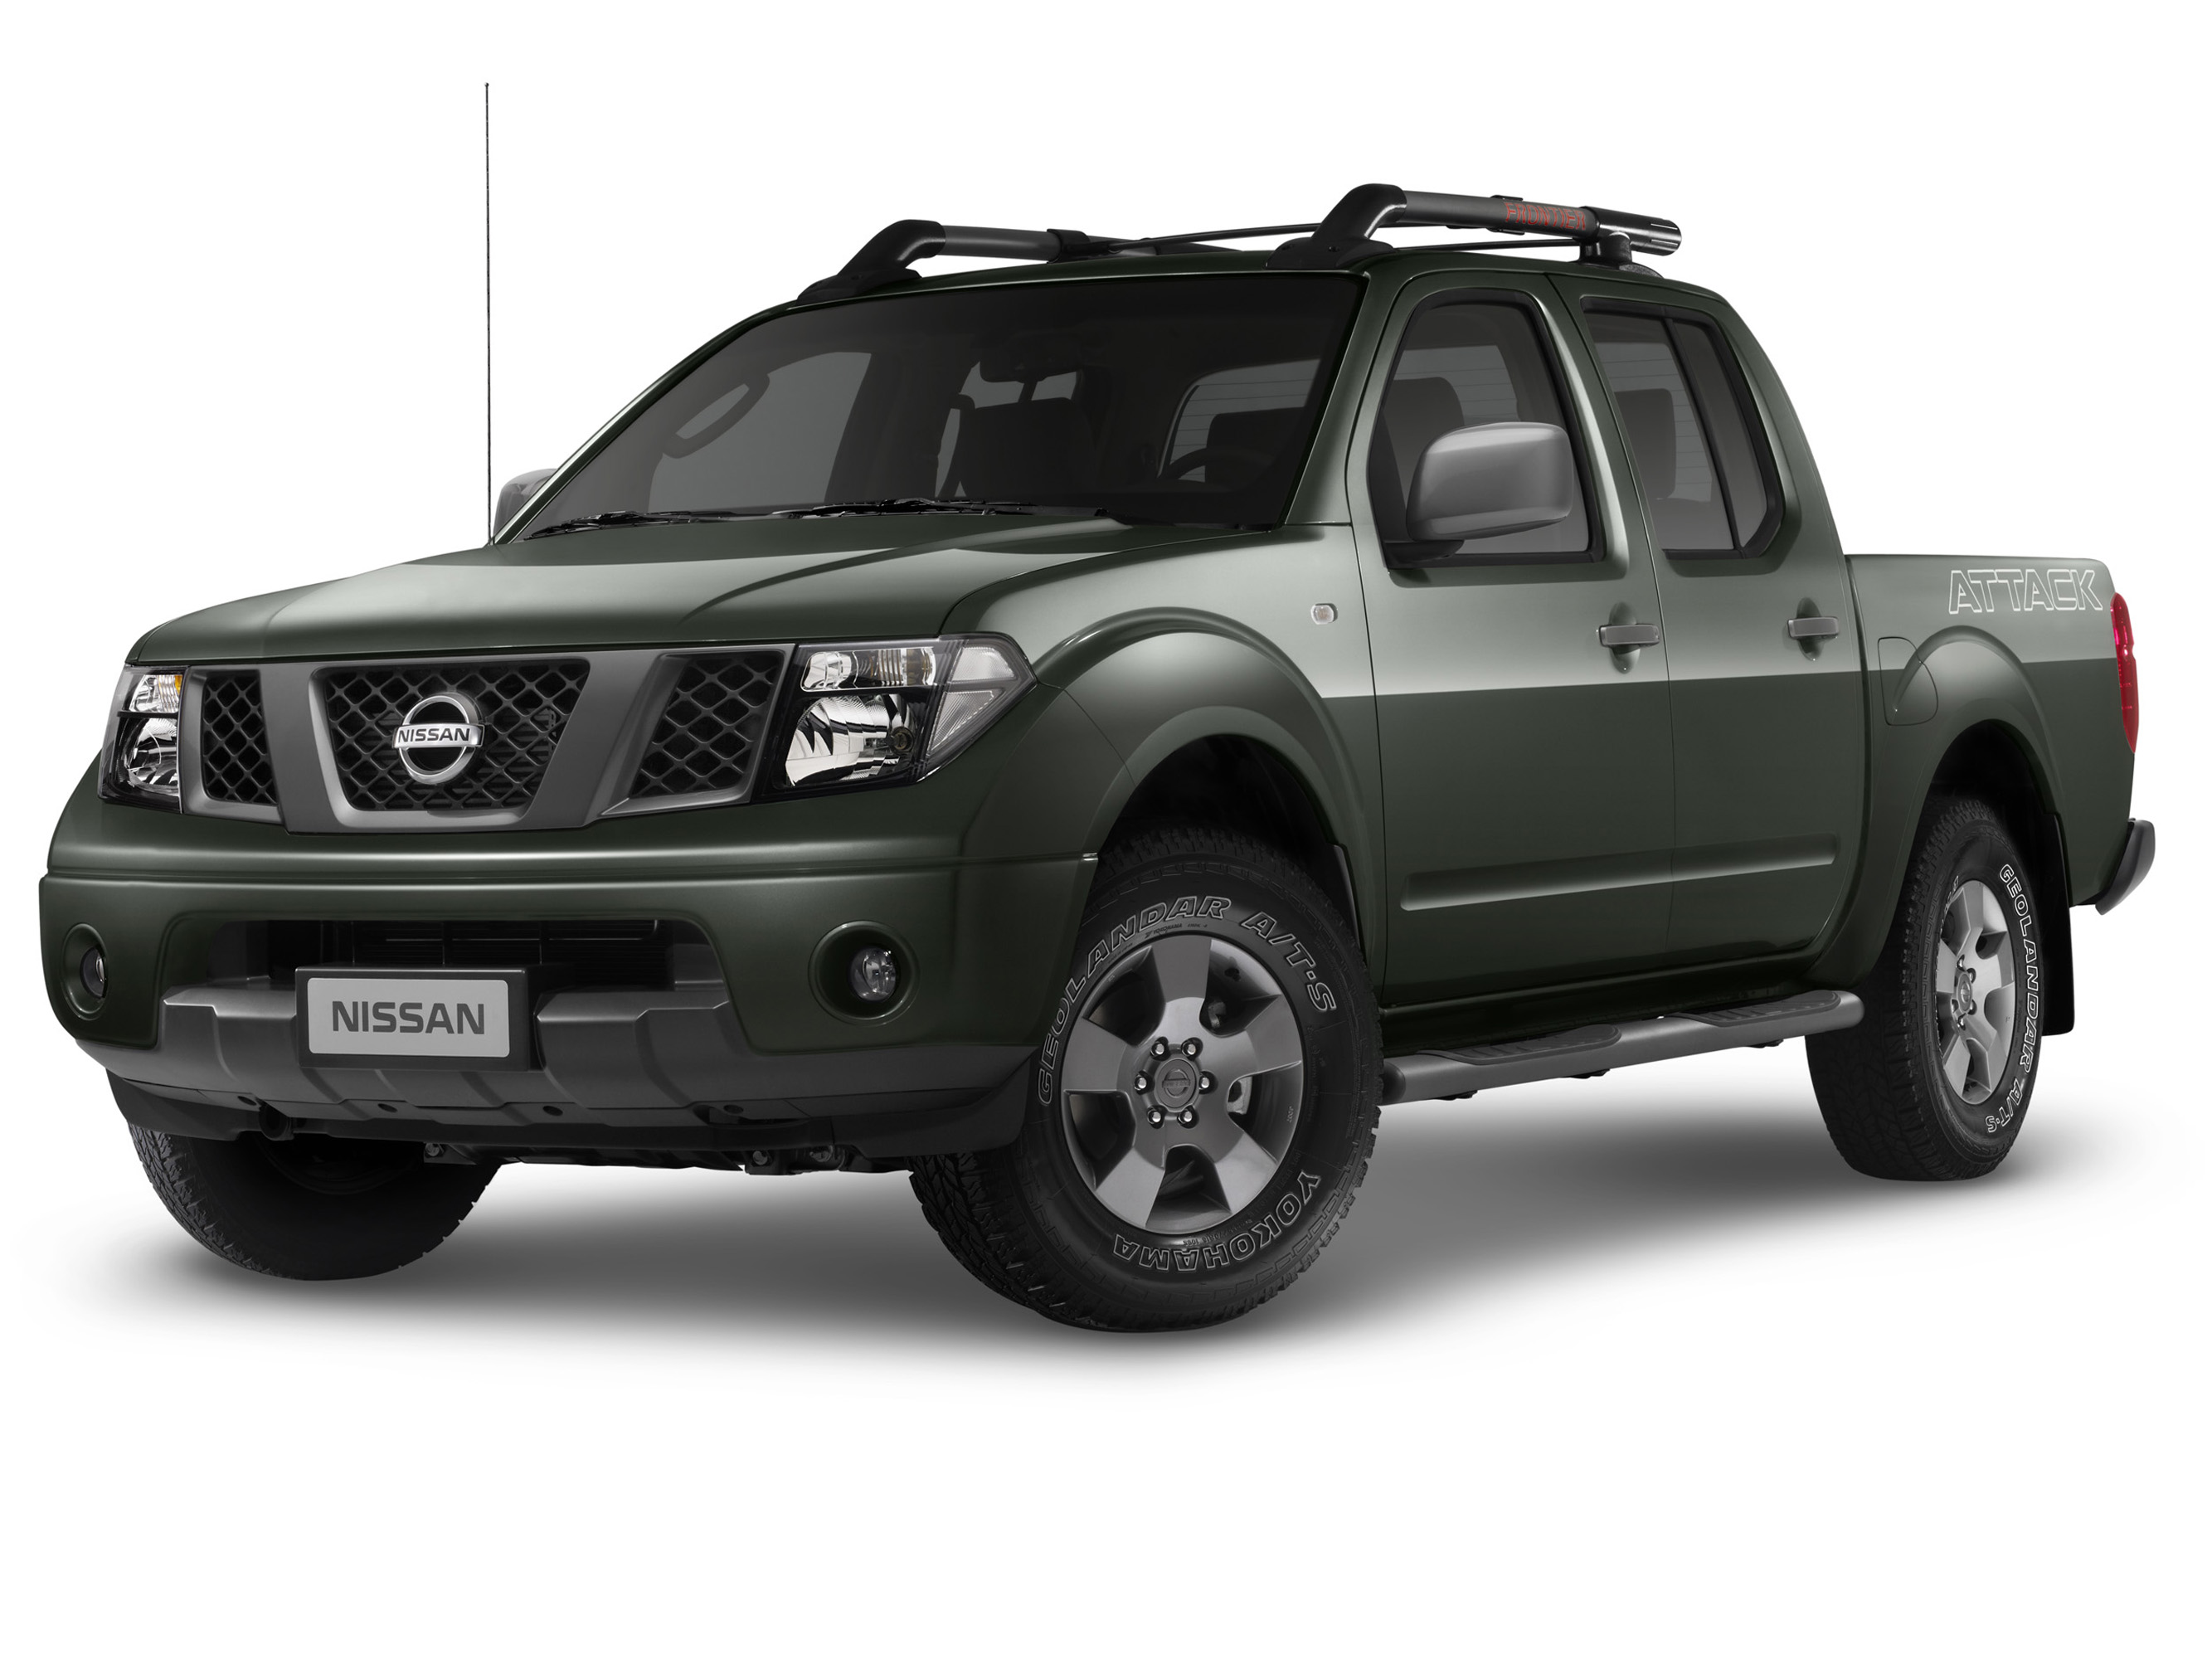 2012 nissan frontier crew cab hd pictures. Black Bedroom Furniture Sets. Home Design Ideas